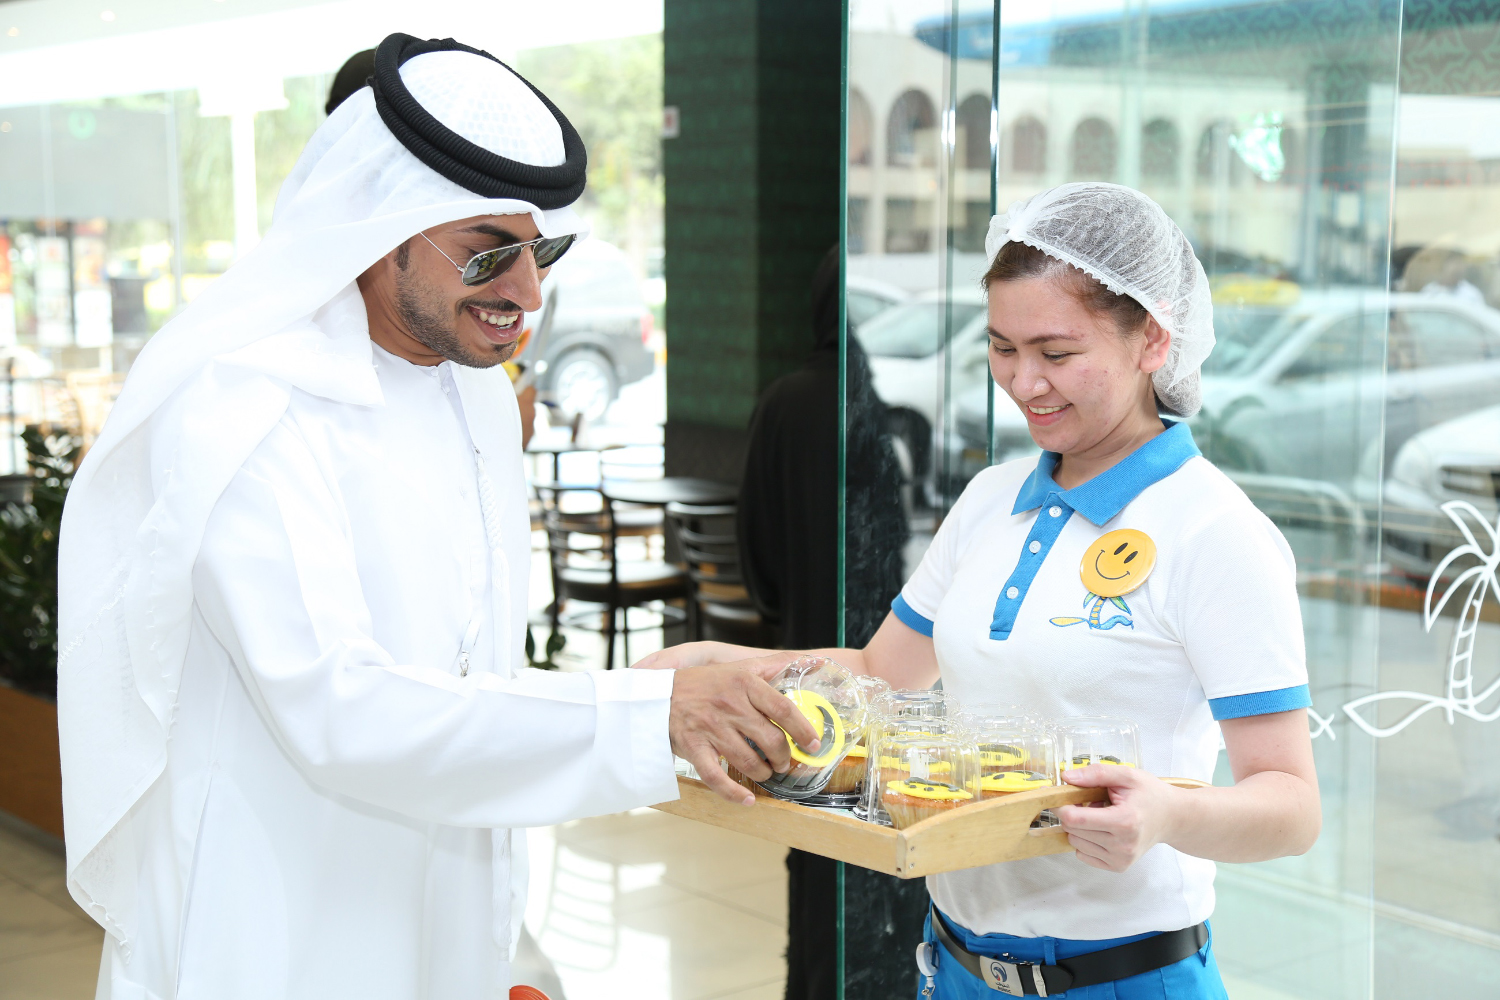 adnoc distribution organize diverse range of activities for its customers on the occasion of the international day of happiness2